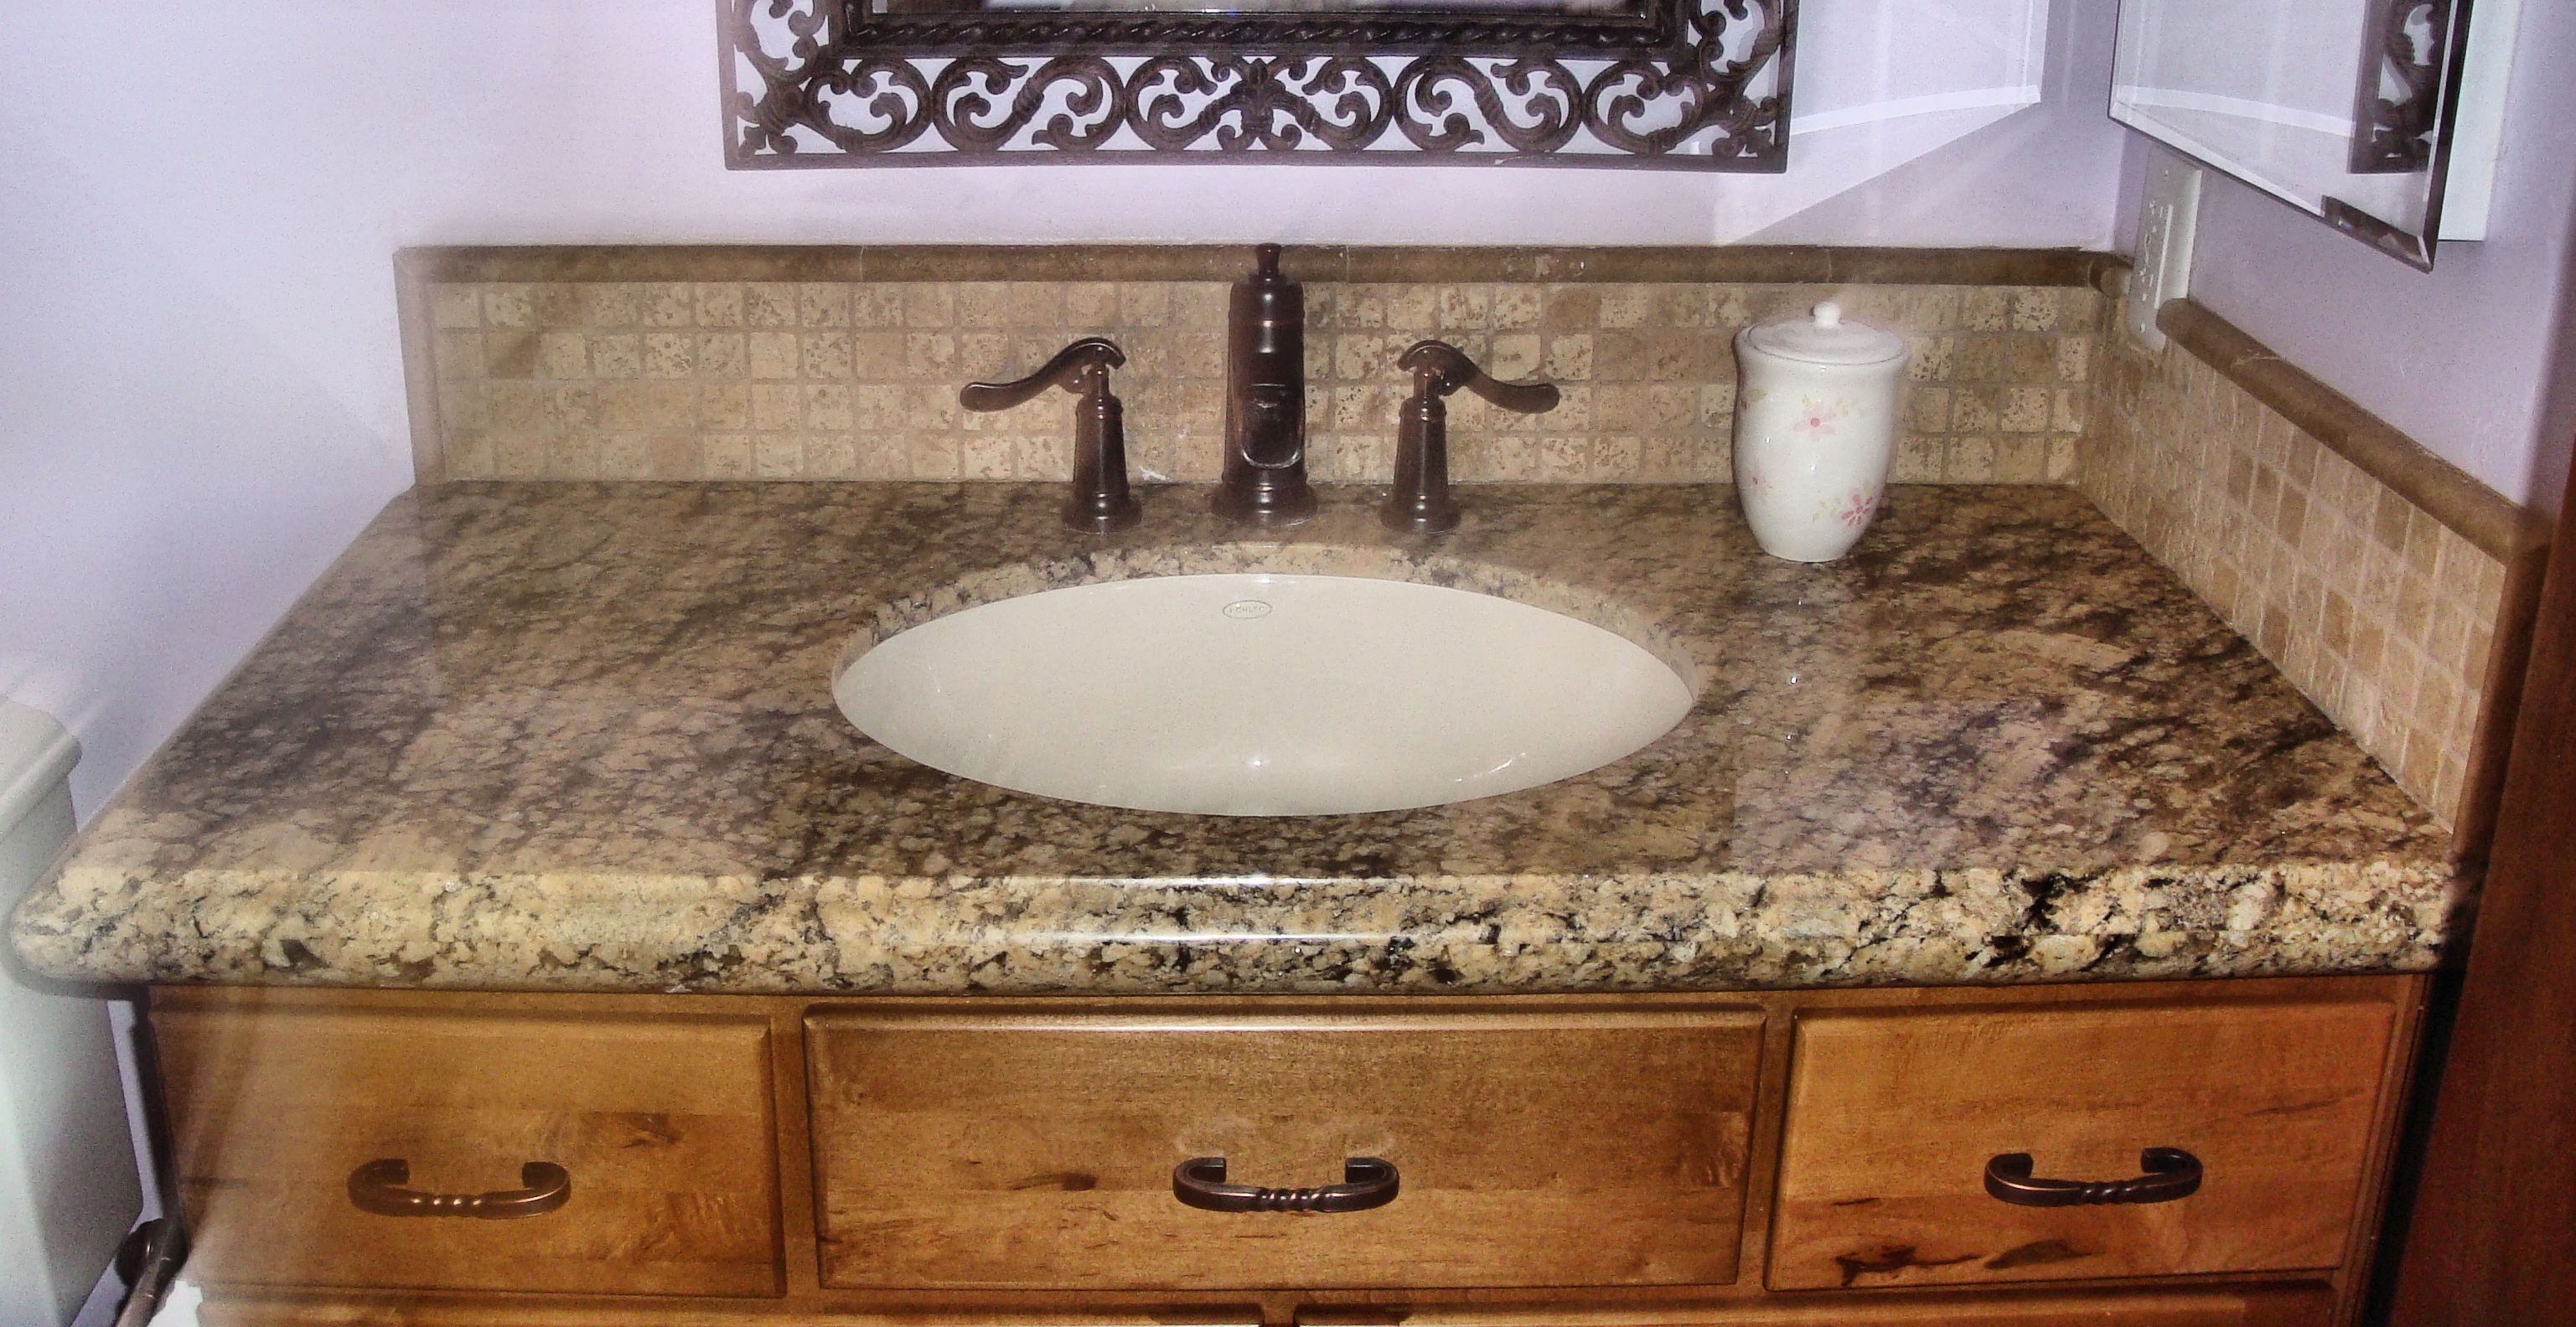 Bathroom with granite countertops - Granite Bathroom Countertops Beige Granite Bathroom Countertop Las Vegas Granite Countertops Las